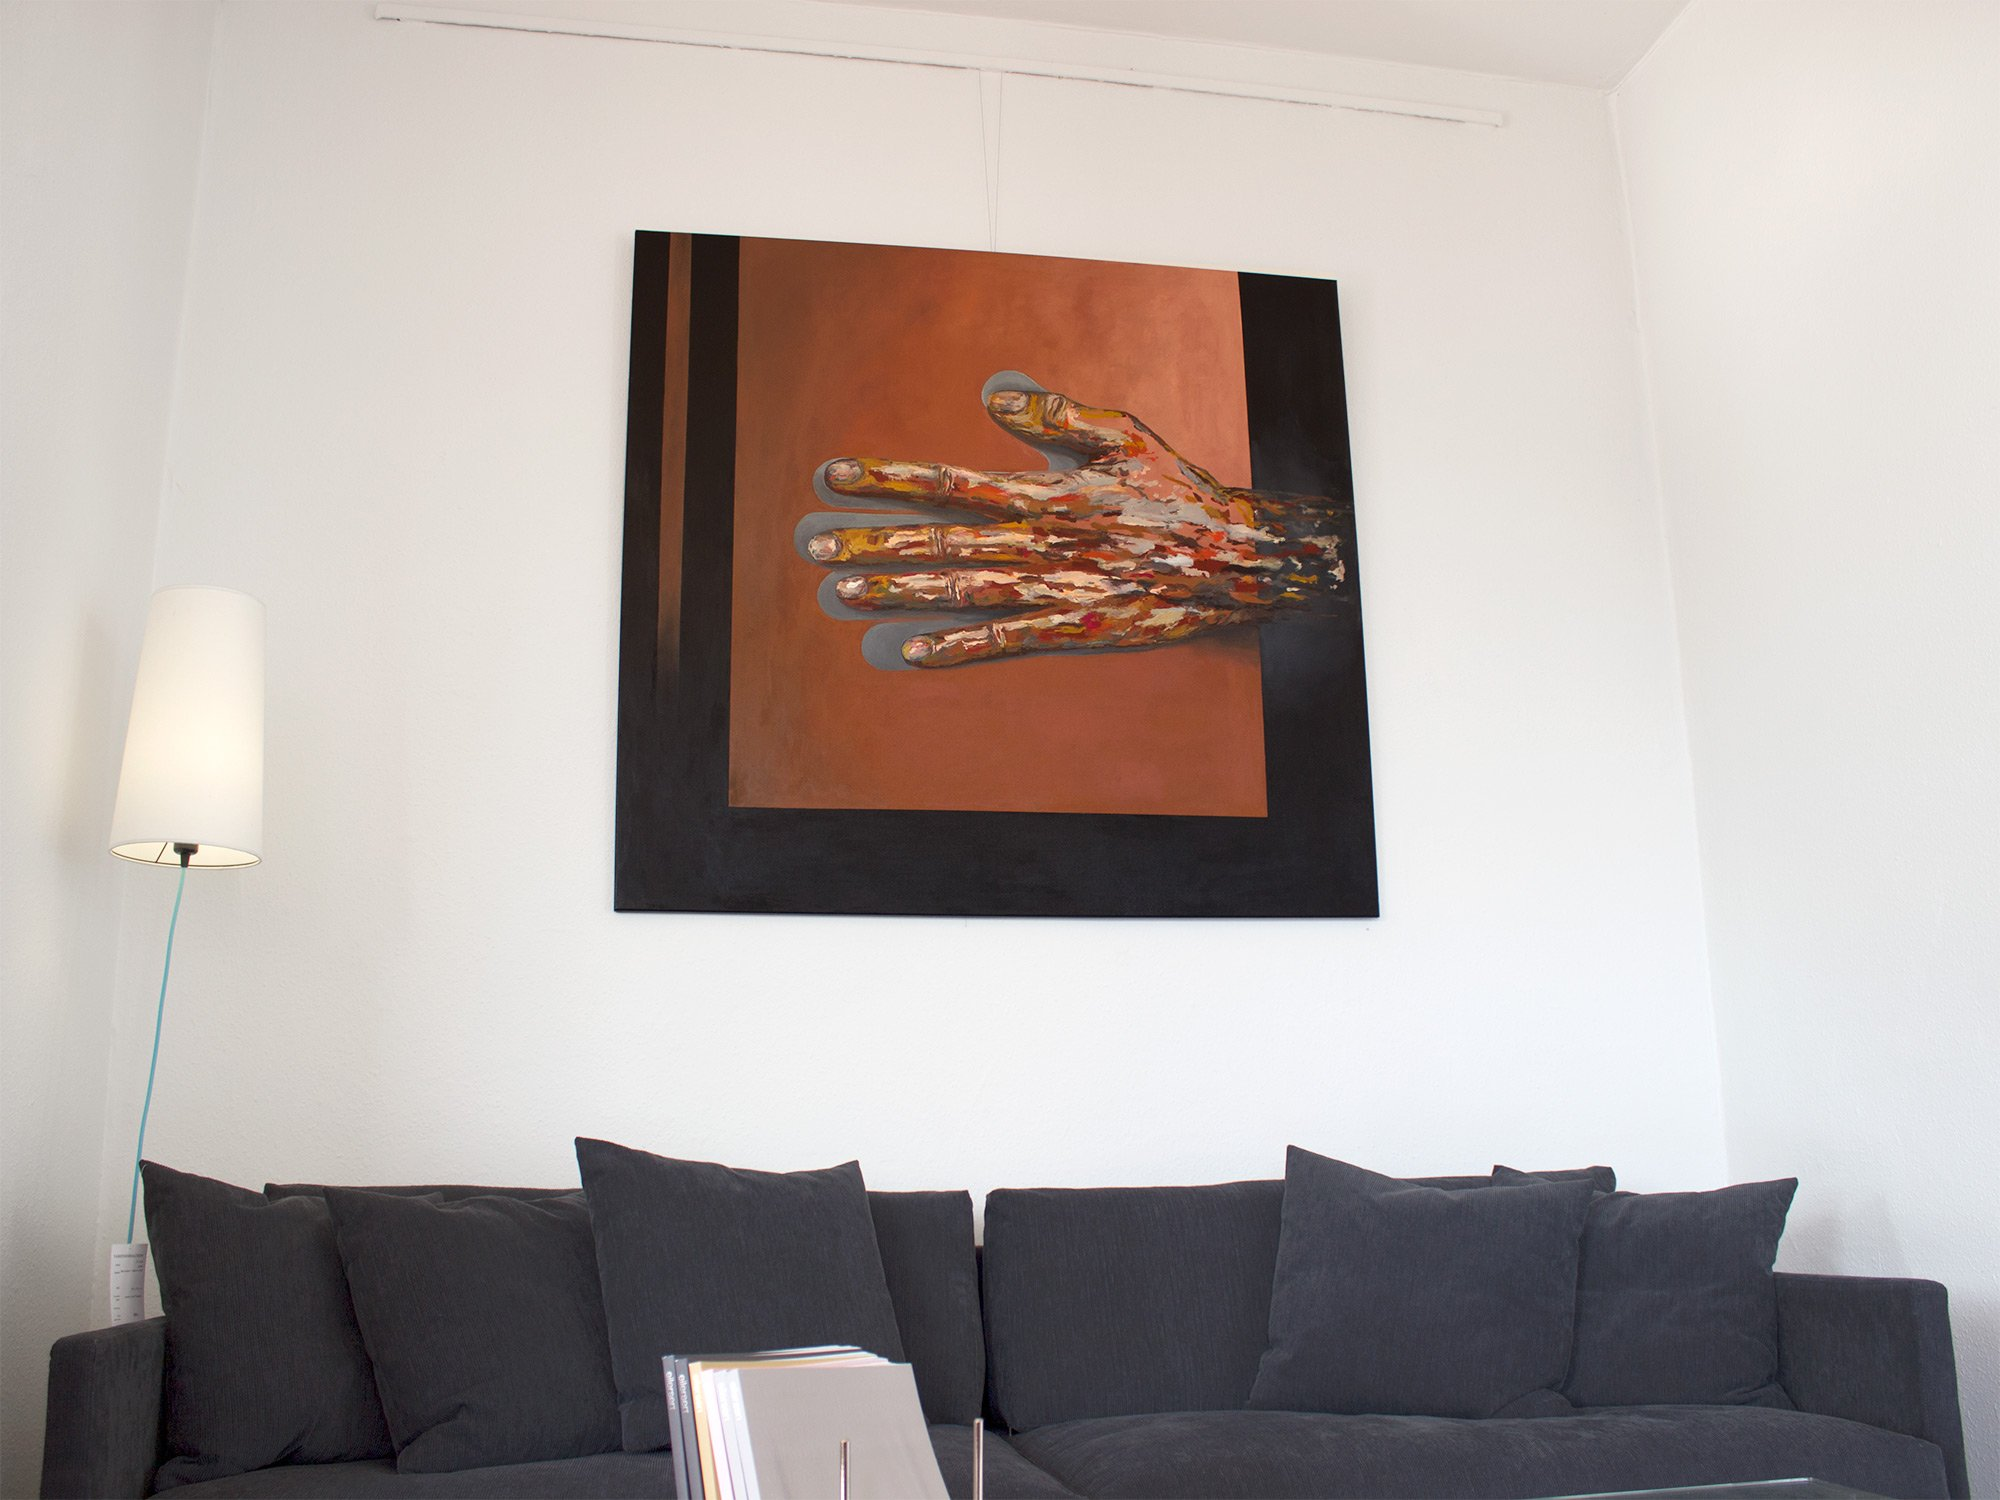 paintings, aesthetic, expressive, still-life, bodies, people, black, brown, orange, red, acrylic, cotton-canvas, conceptual, contemporary-art, interior, interior-design, modern, modern-art, symbolic, Buy original high quality art. Paintings, drawings, limited edition prints & posters by talented artists.